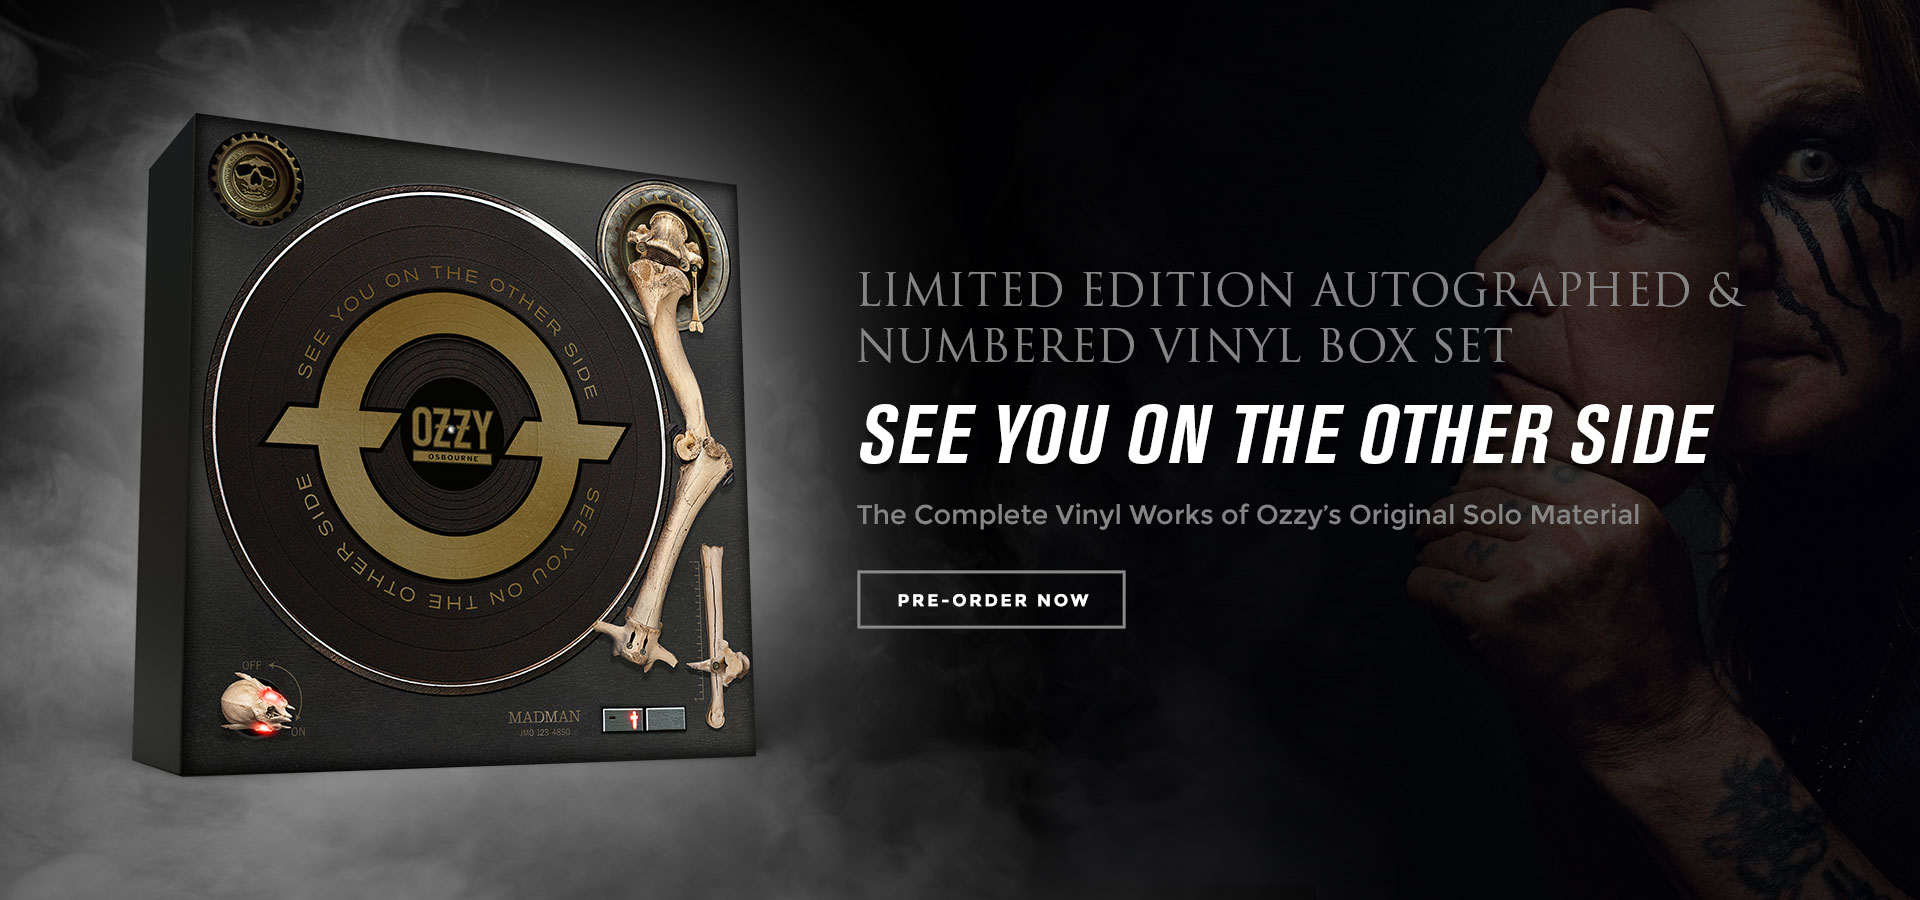 Shop the Ozzy Osbourne See You On The Other Side Limited Edition Autographed & Numbered Vinyl Box Set!